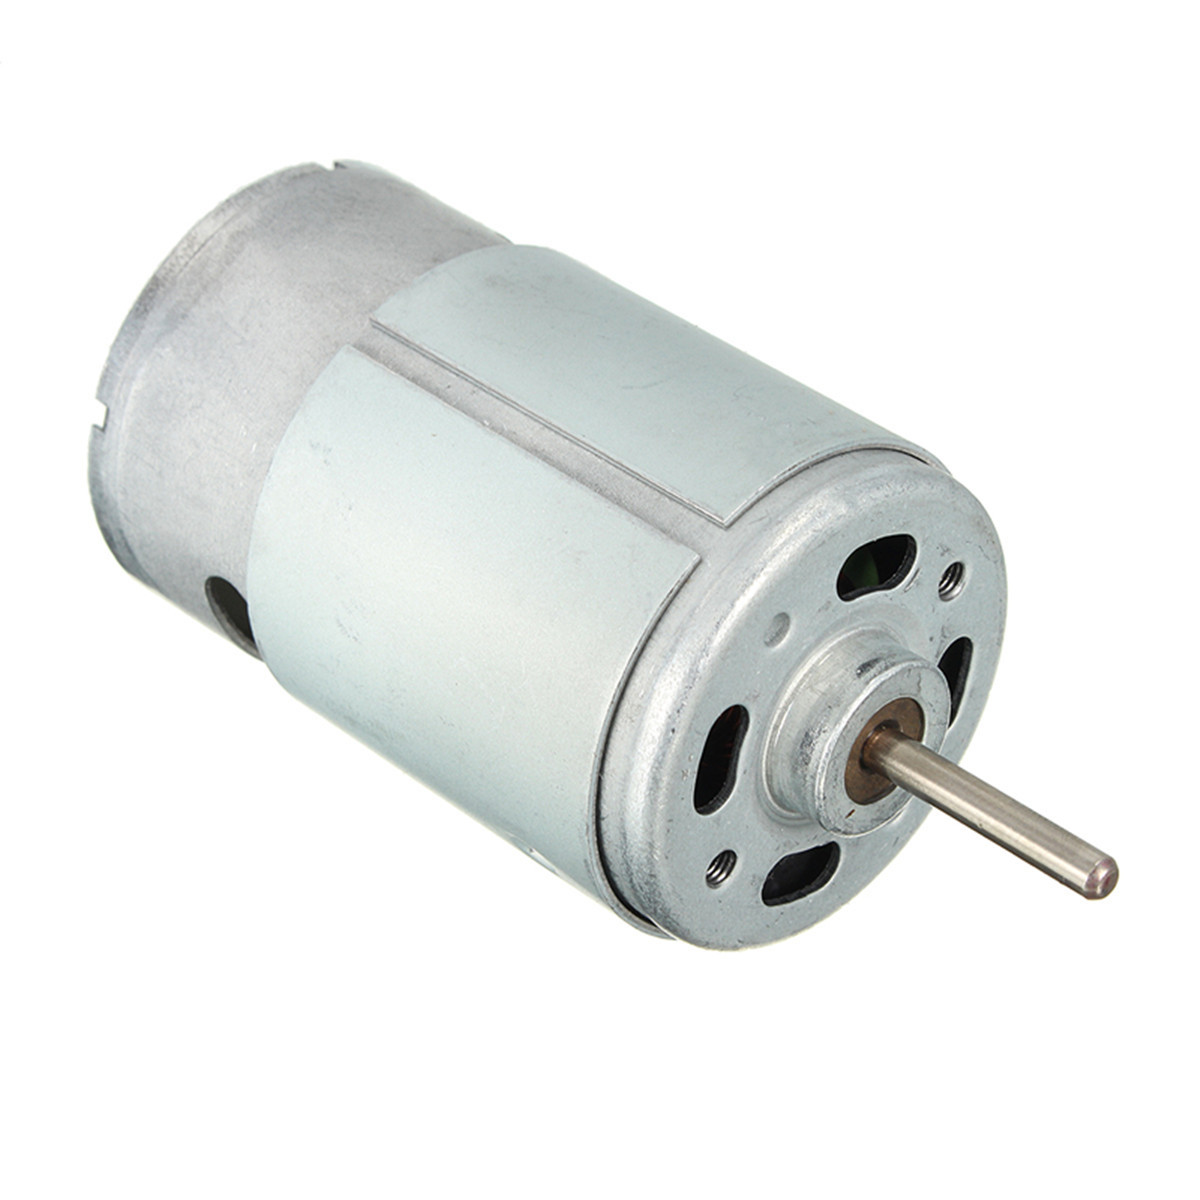 Dc 12v 30000 Rpm Motor Gears Rotary Speed Gear Box Motor